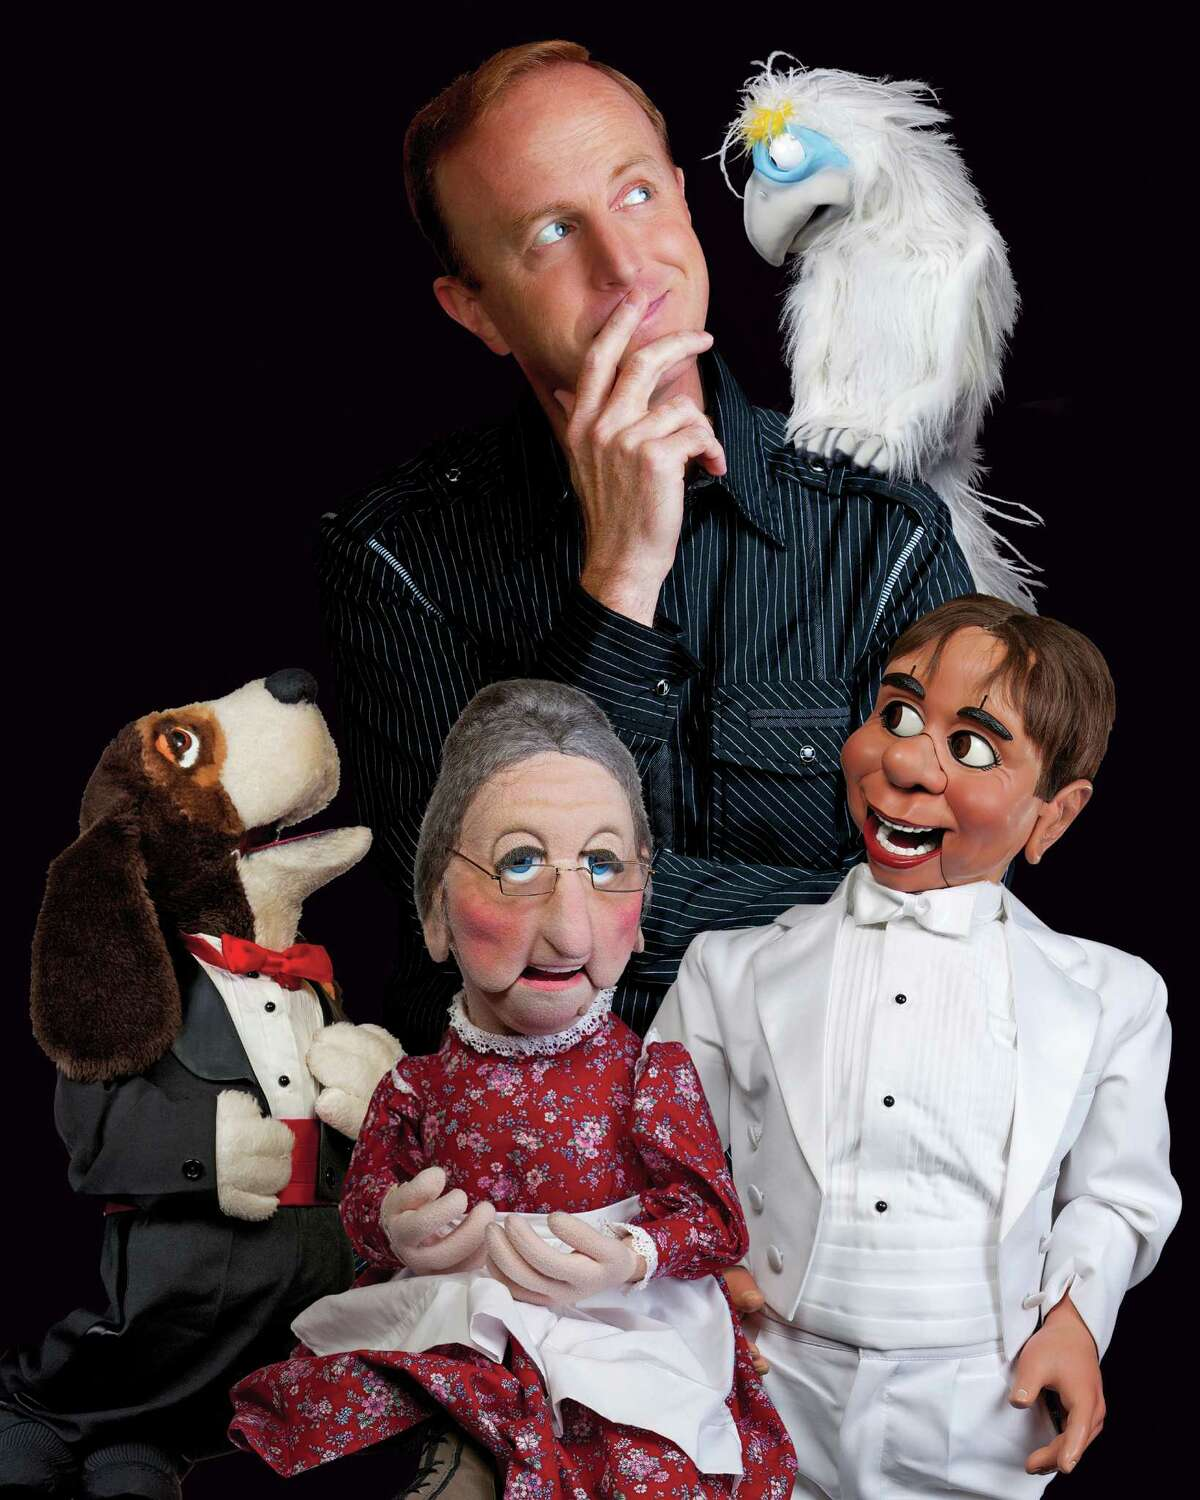 David Pendleton, who has been bringing his comic ventriloquist act to stages around the country, will be arriving with his quartet of